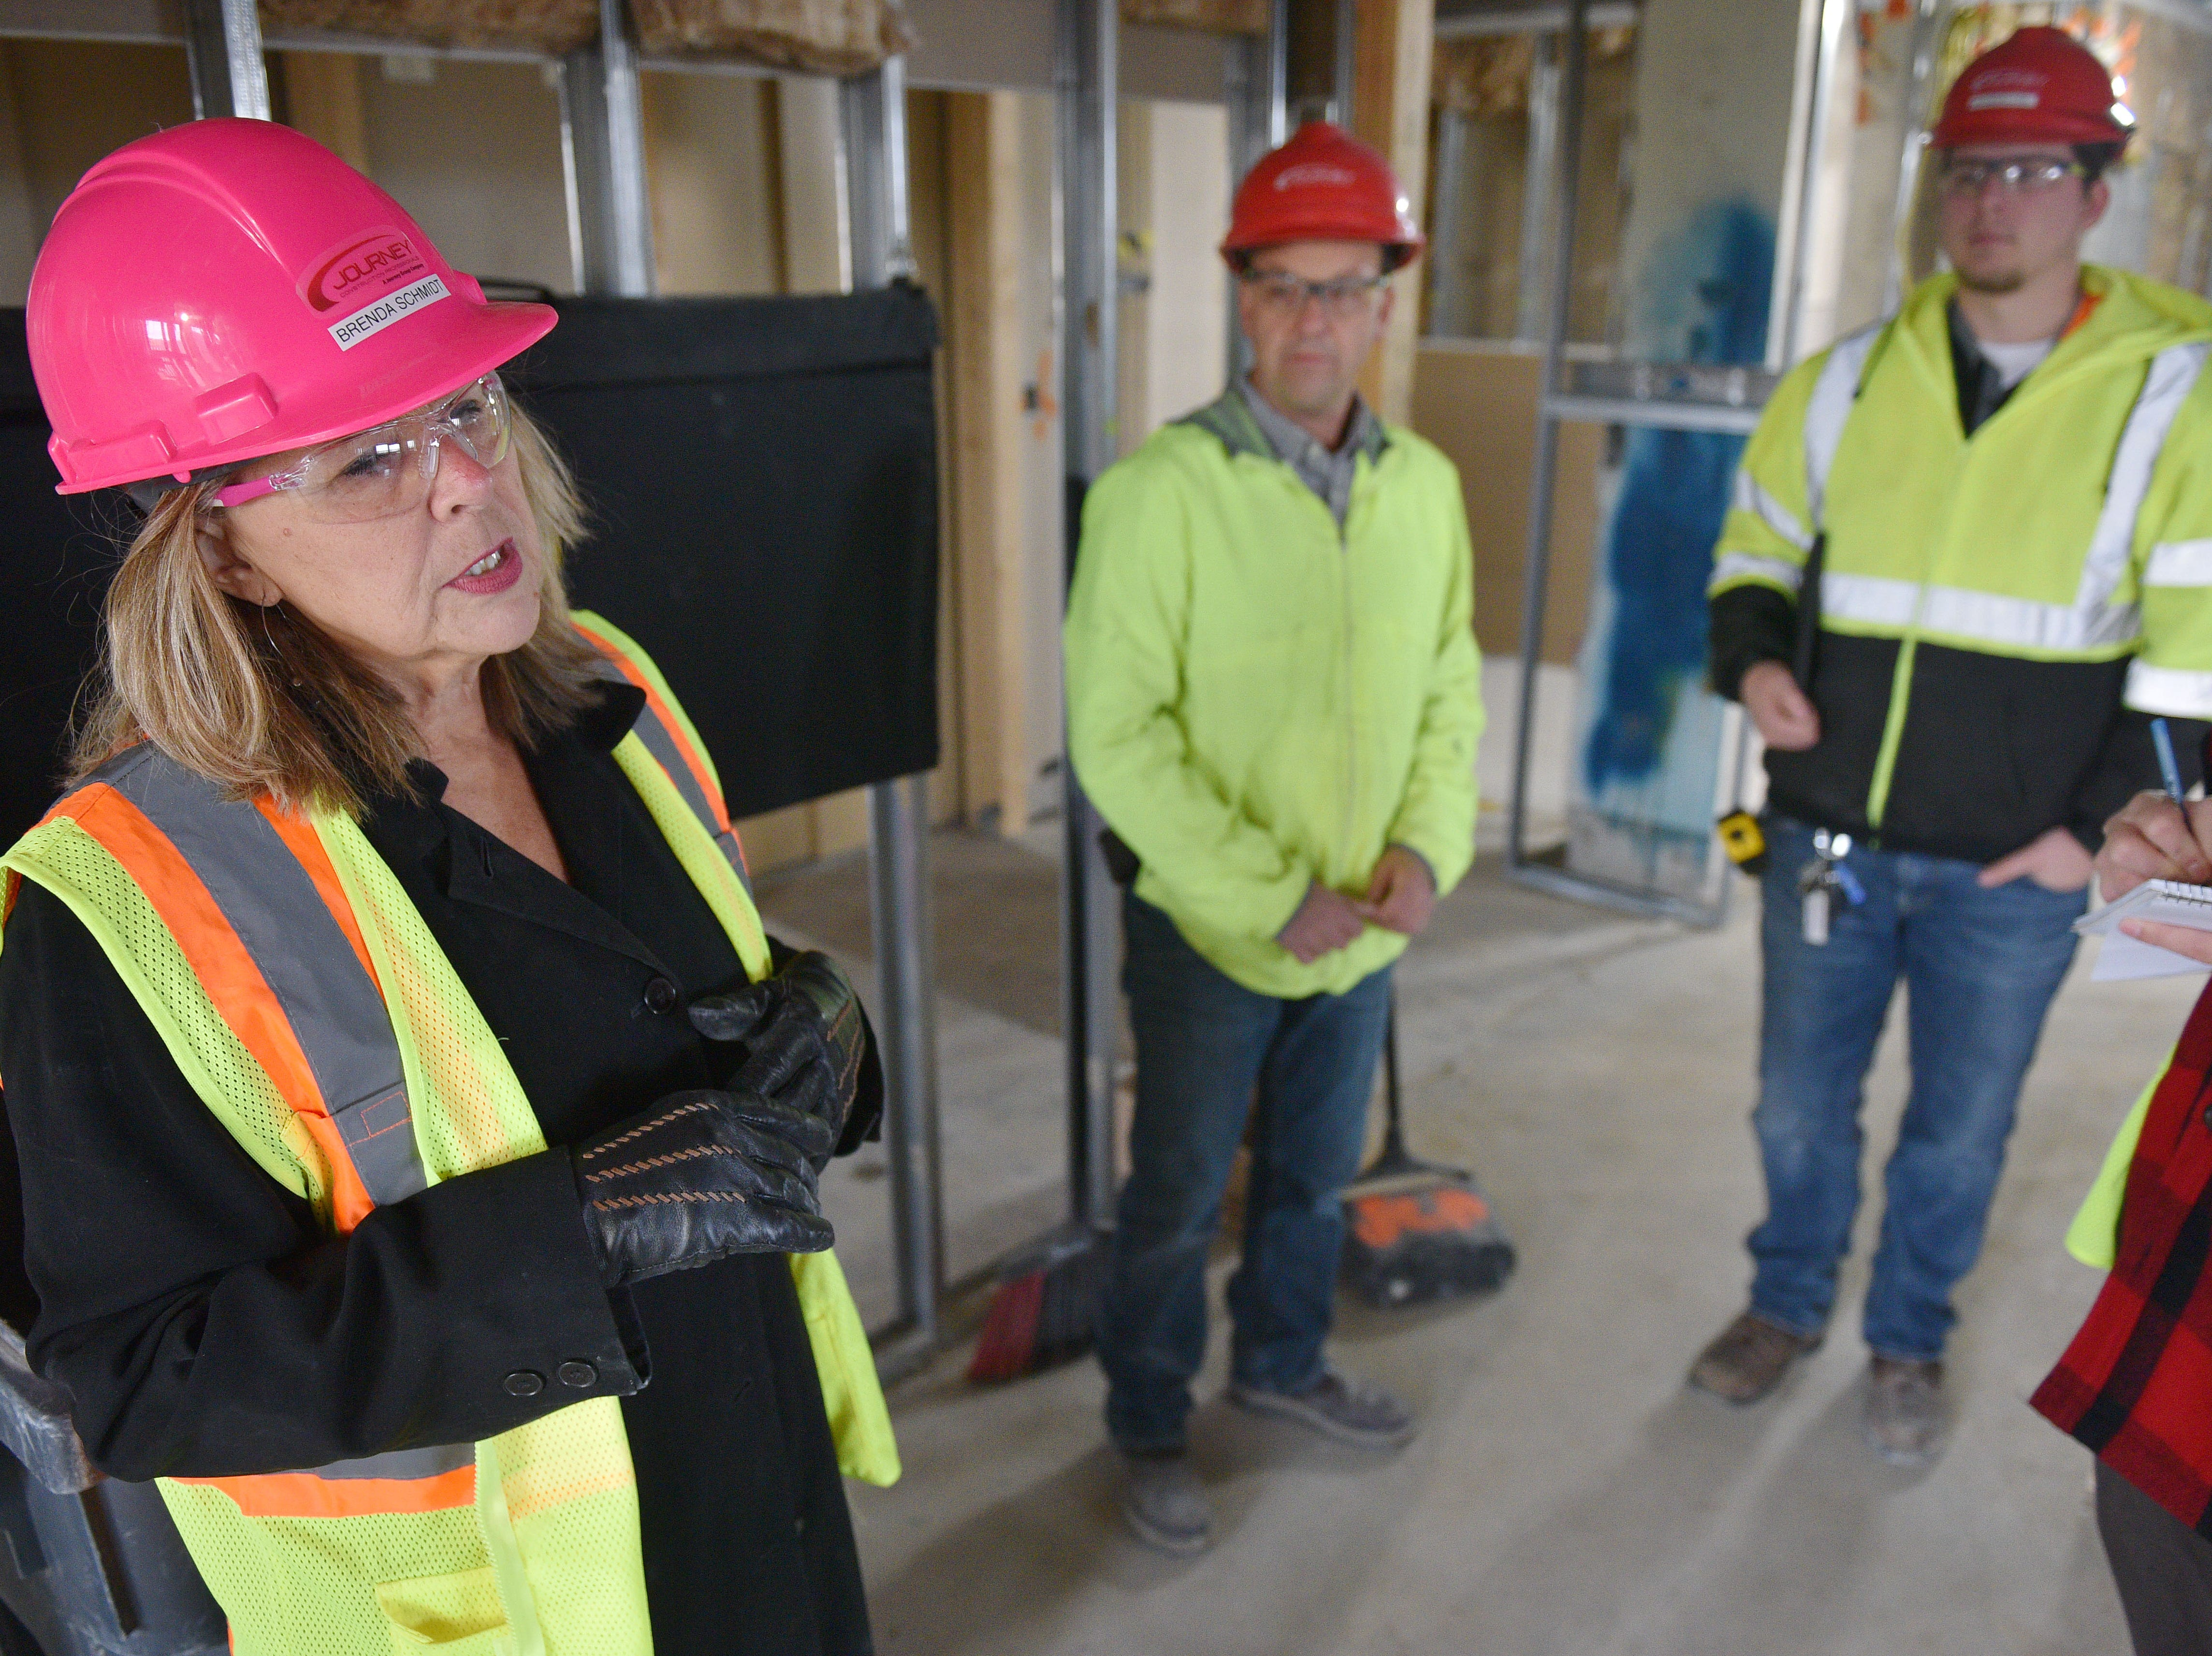 Kelly Inns President and CEO Brenda Schmidt, left, gives a tour of Hotel Phillips with Journey superintendent Roger Klebe, center, and project engineer Jacob Mulder, right, Thursday, Oct. 11, in downtown Sioux Falls. The luxury hotel is an ongoing remodel of the old Great Western building.